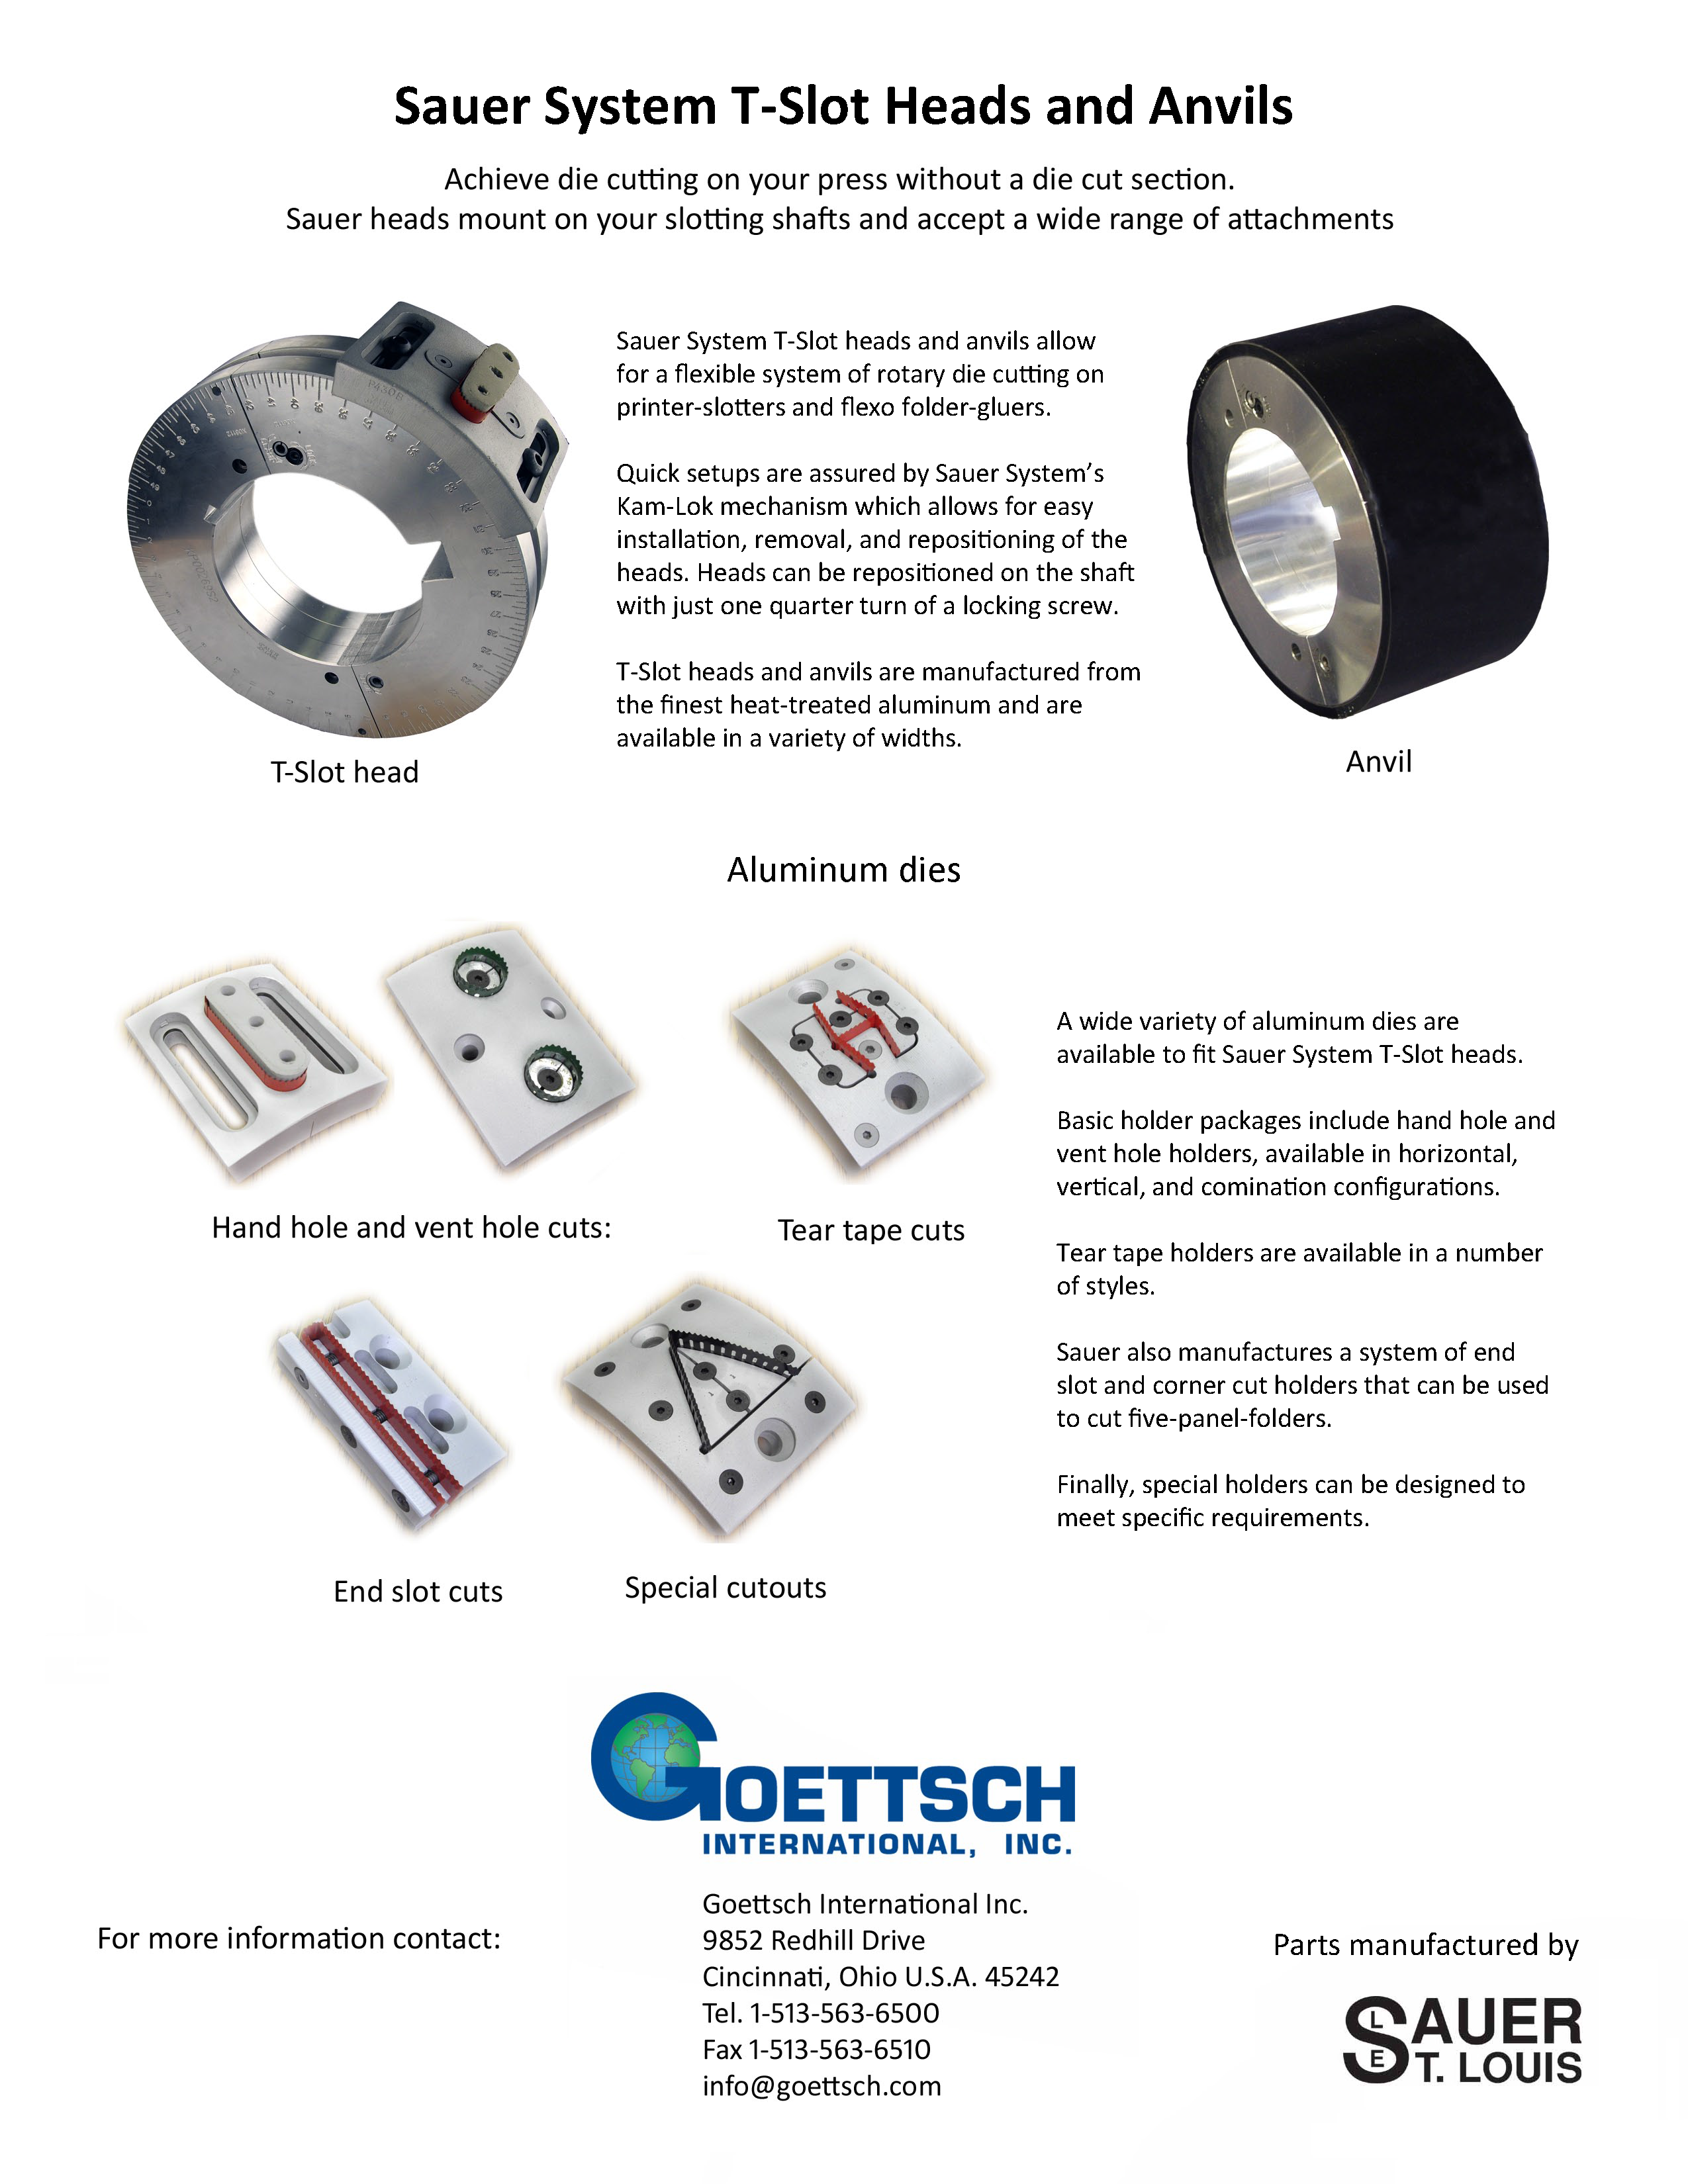 Learn more about the T-Slot Heads, Anvils and Aluminum Dies in the Sauer System brochure